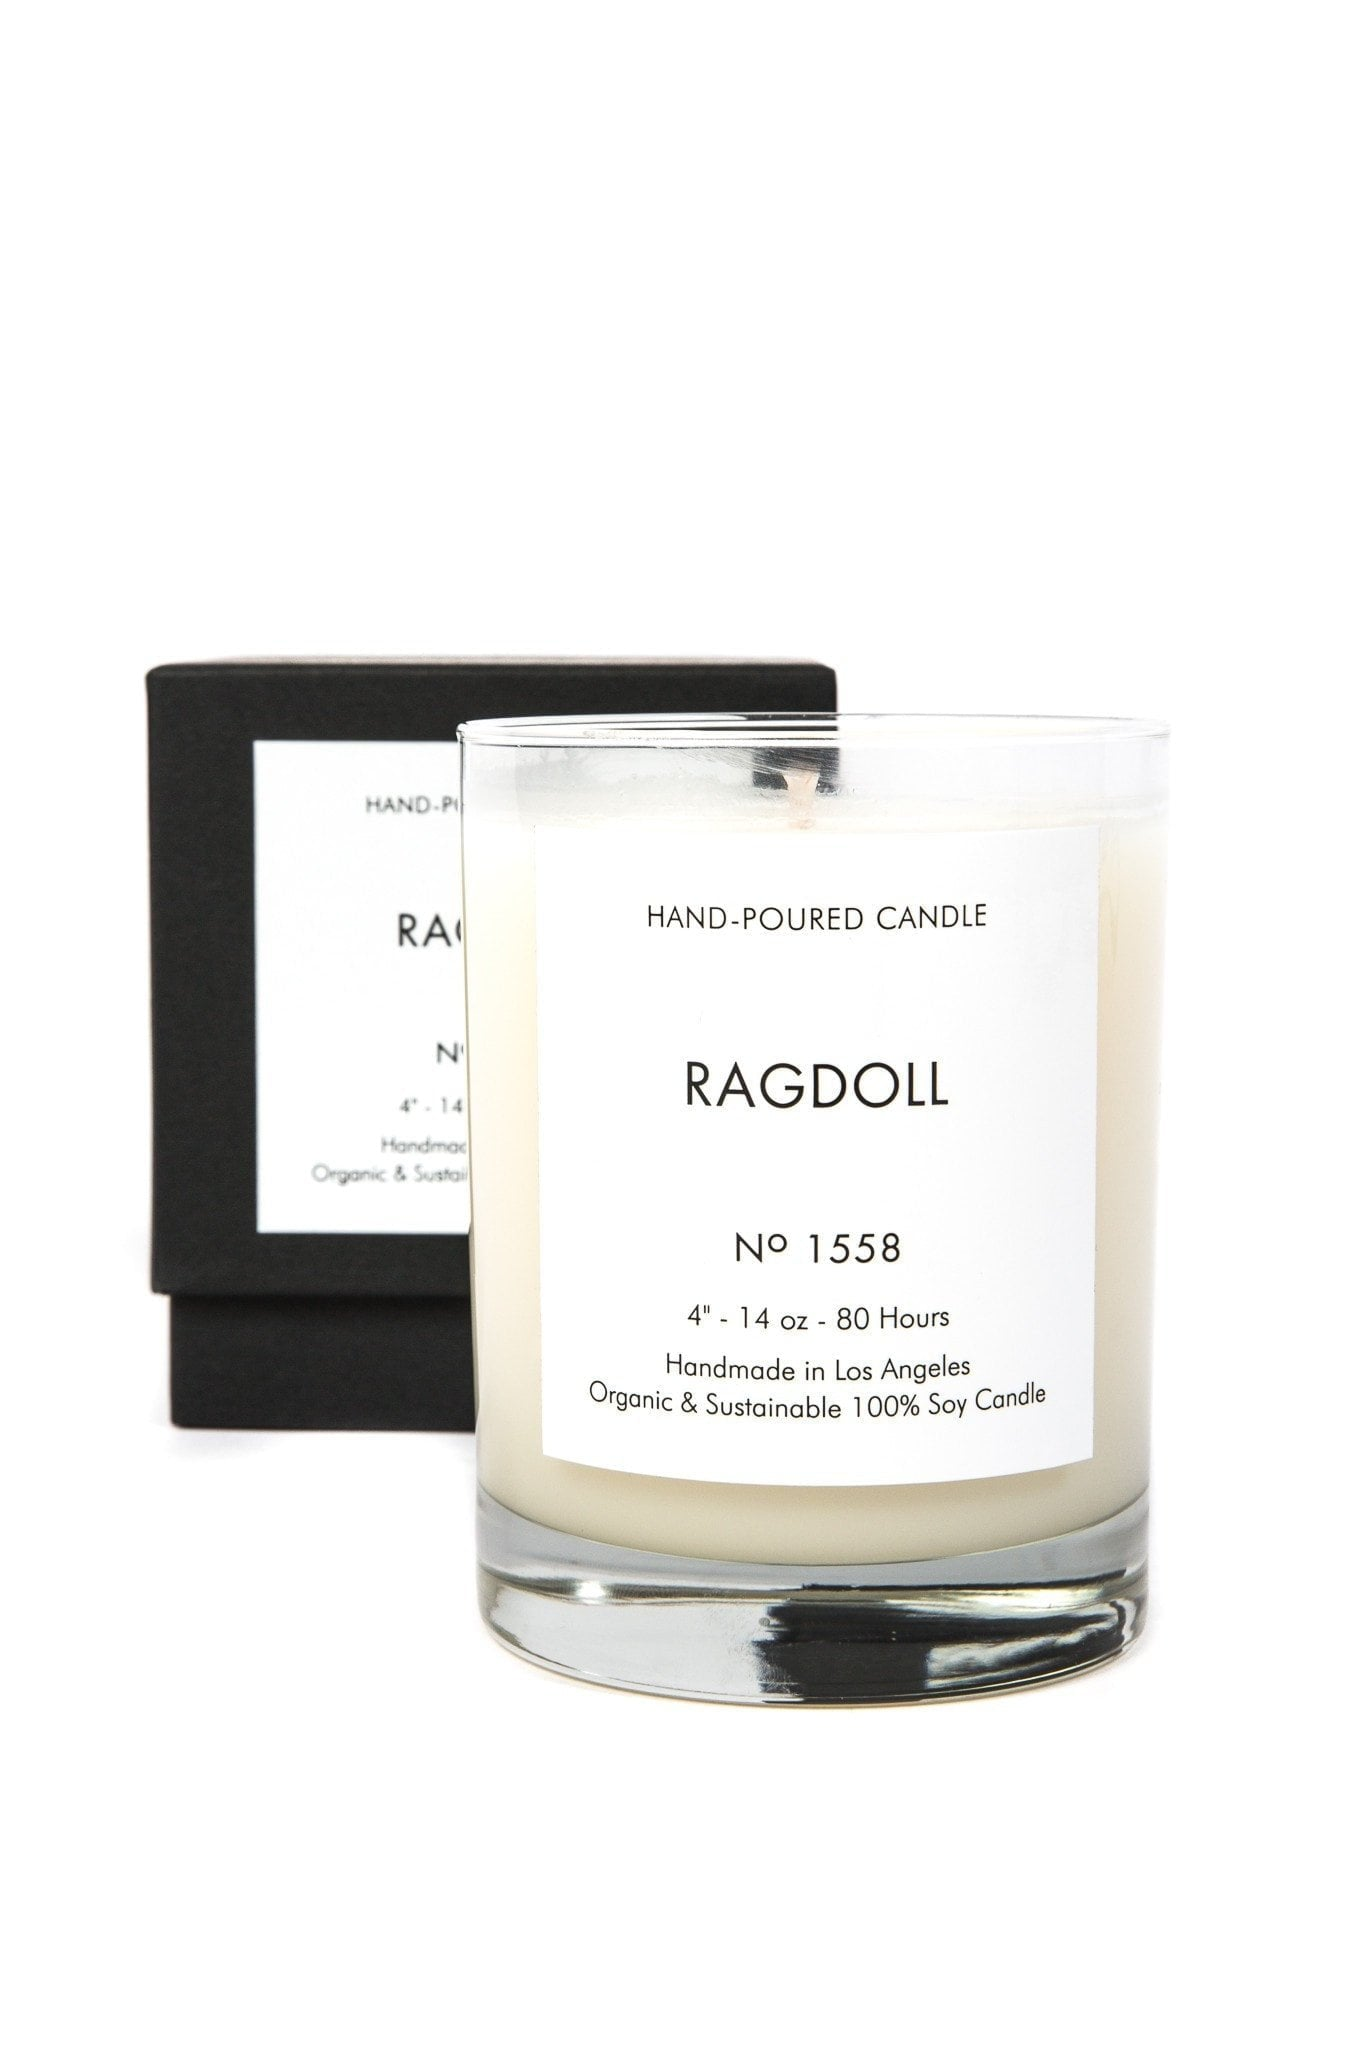 HAND-POURED CANDLE No 1558